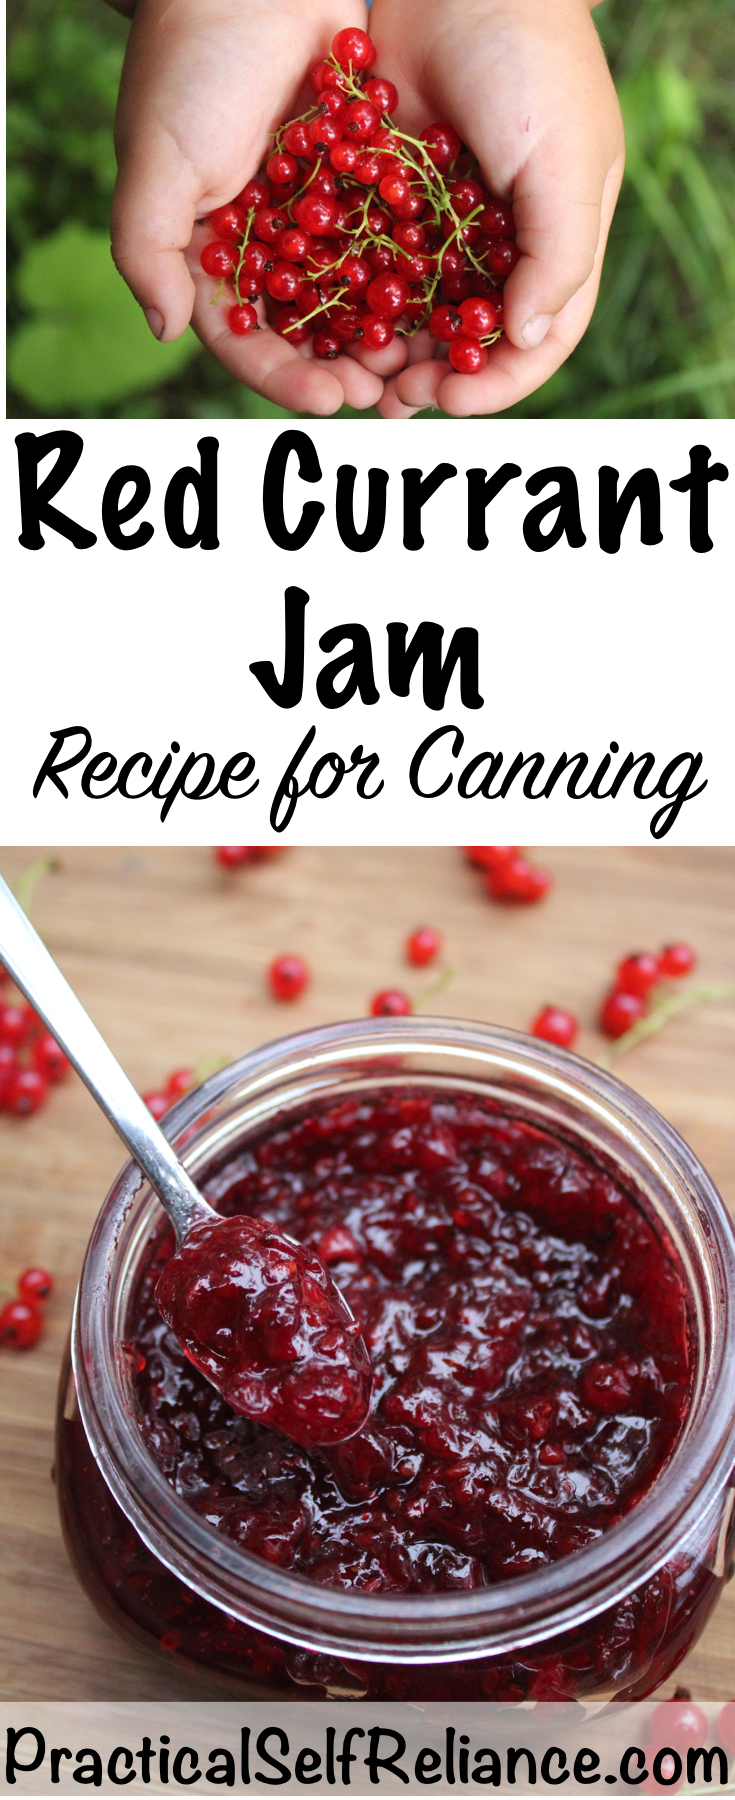 Red Currant Jam Recipe for Canning